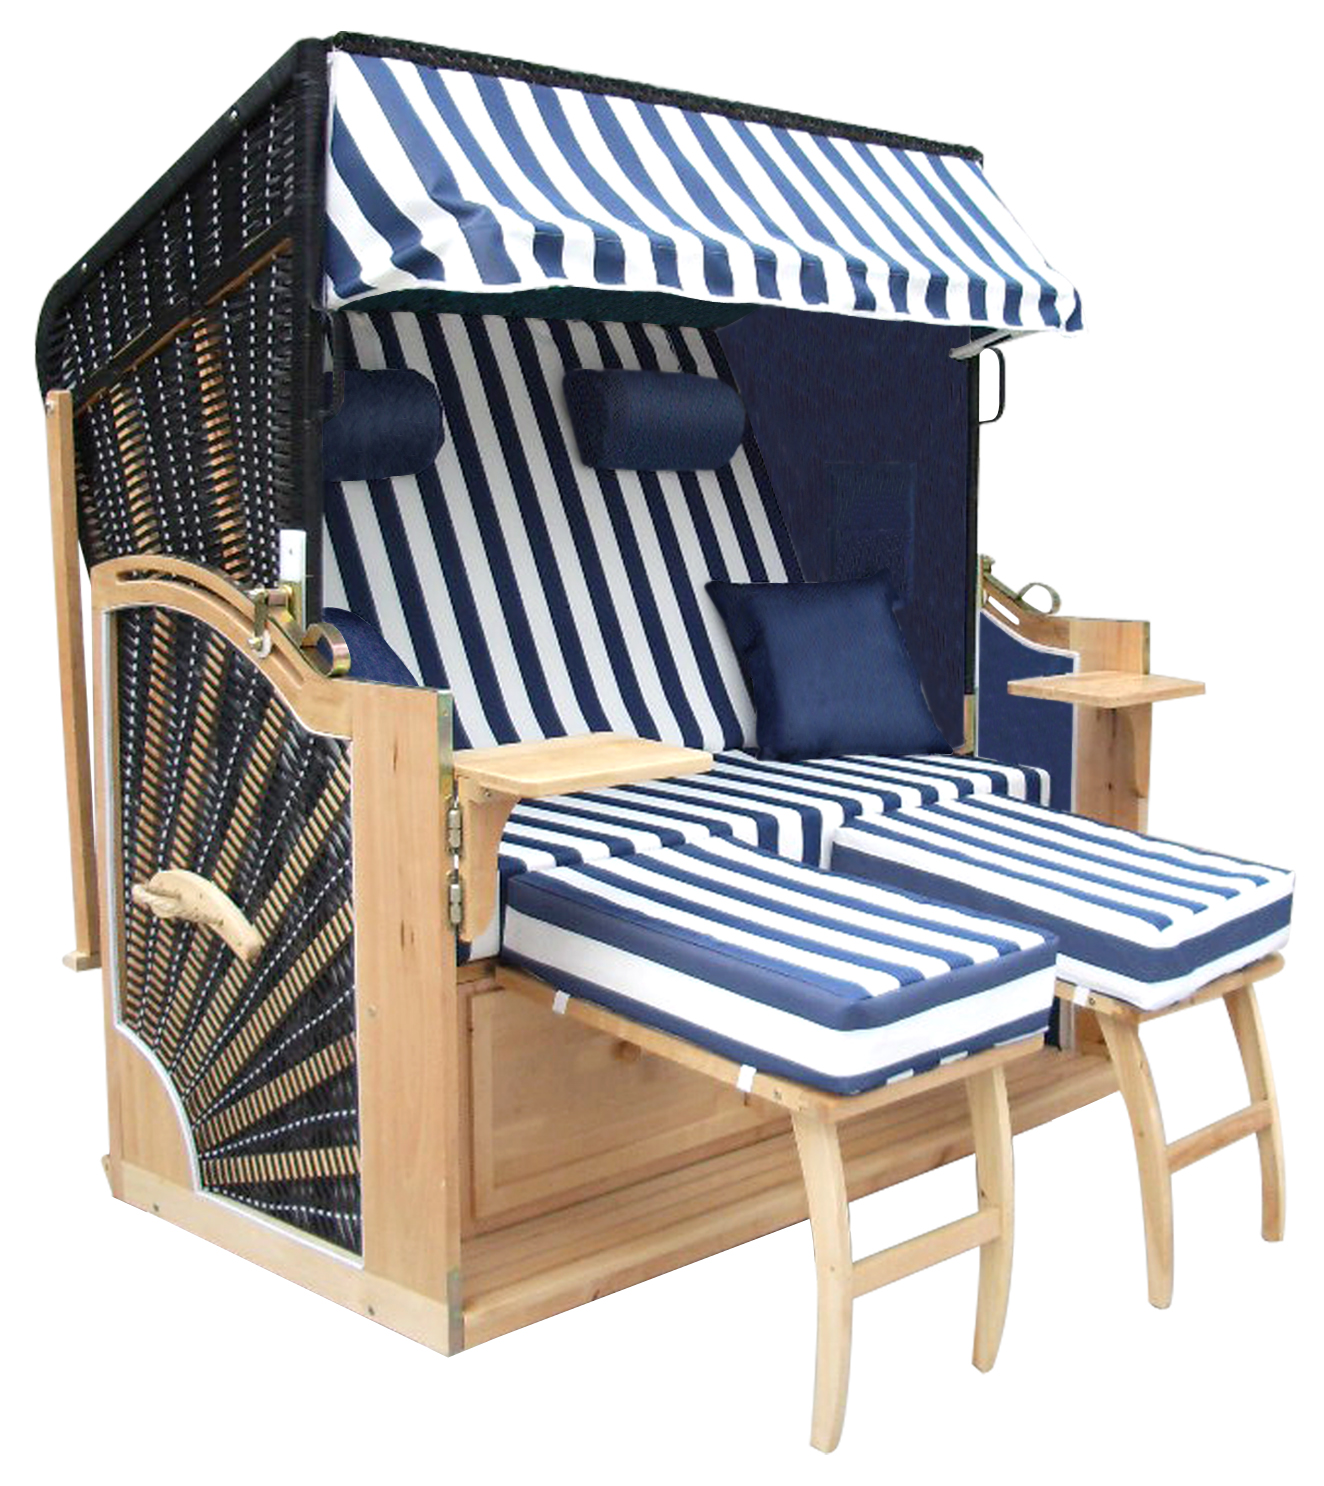 strandkorb xxl r gen ii blau wei gestreift ebay. Black Bedroom Furniture Sets. Home Design Ideas